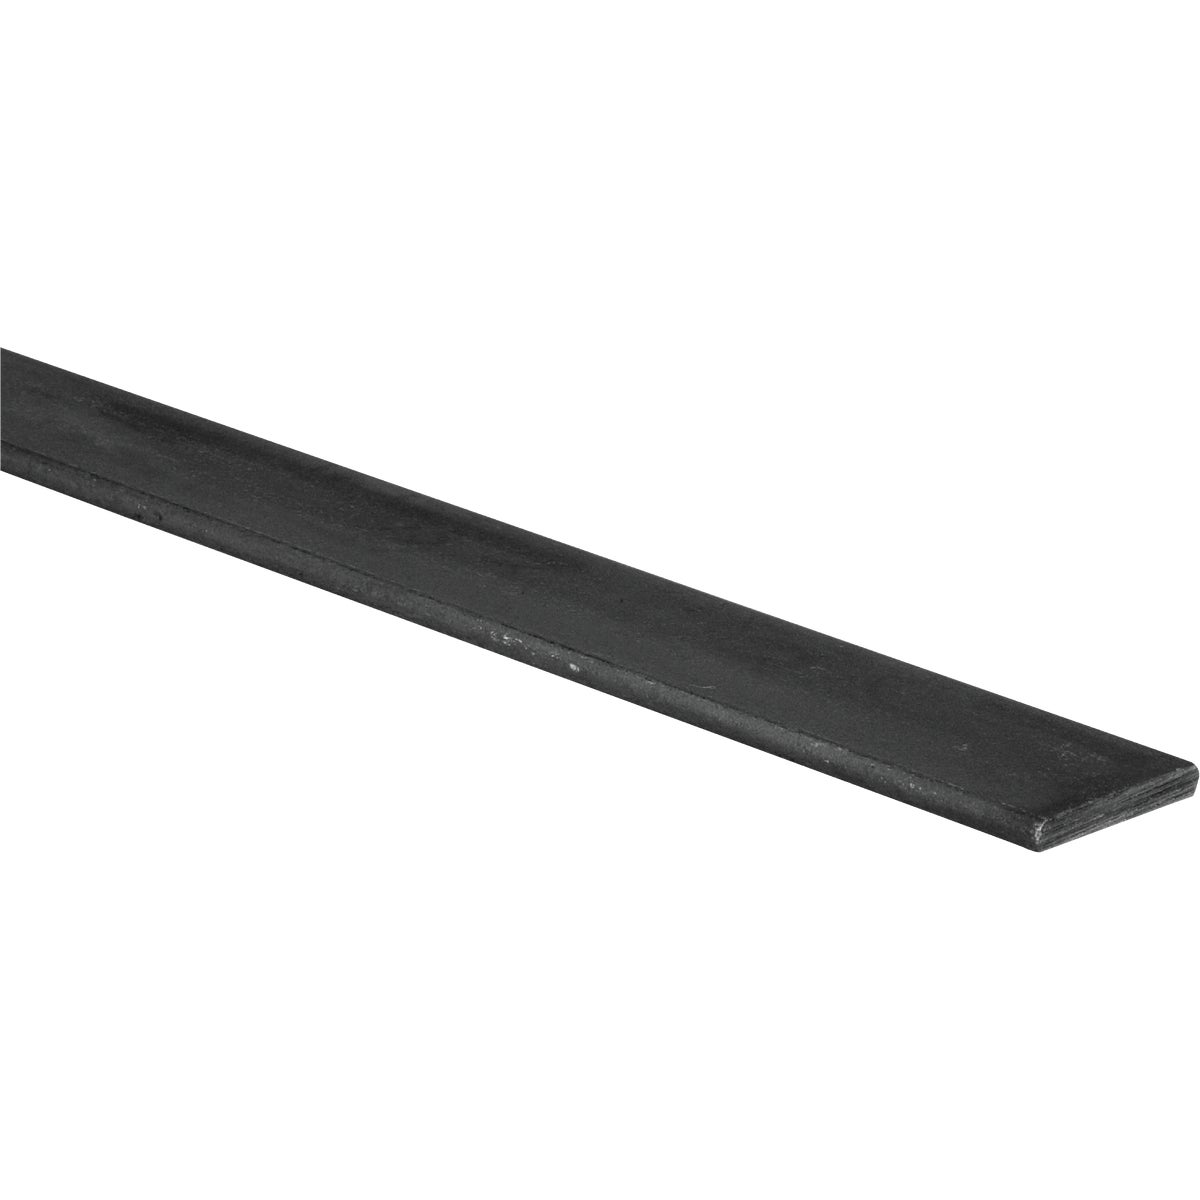 1/8X1X6' HR STL FLAT BAR - N215566 by National Mfg Co